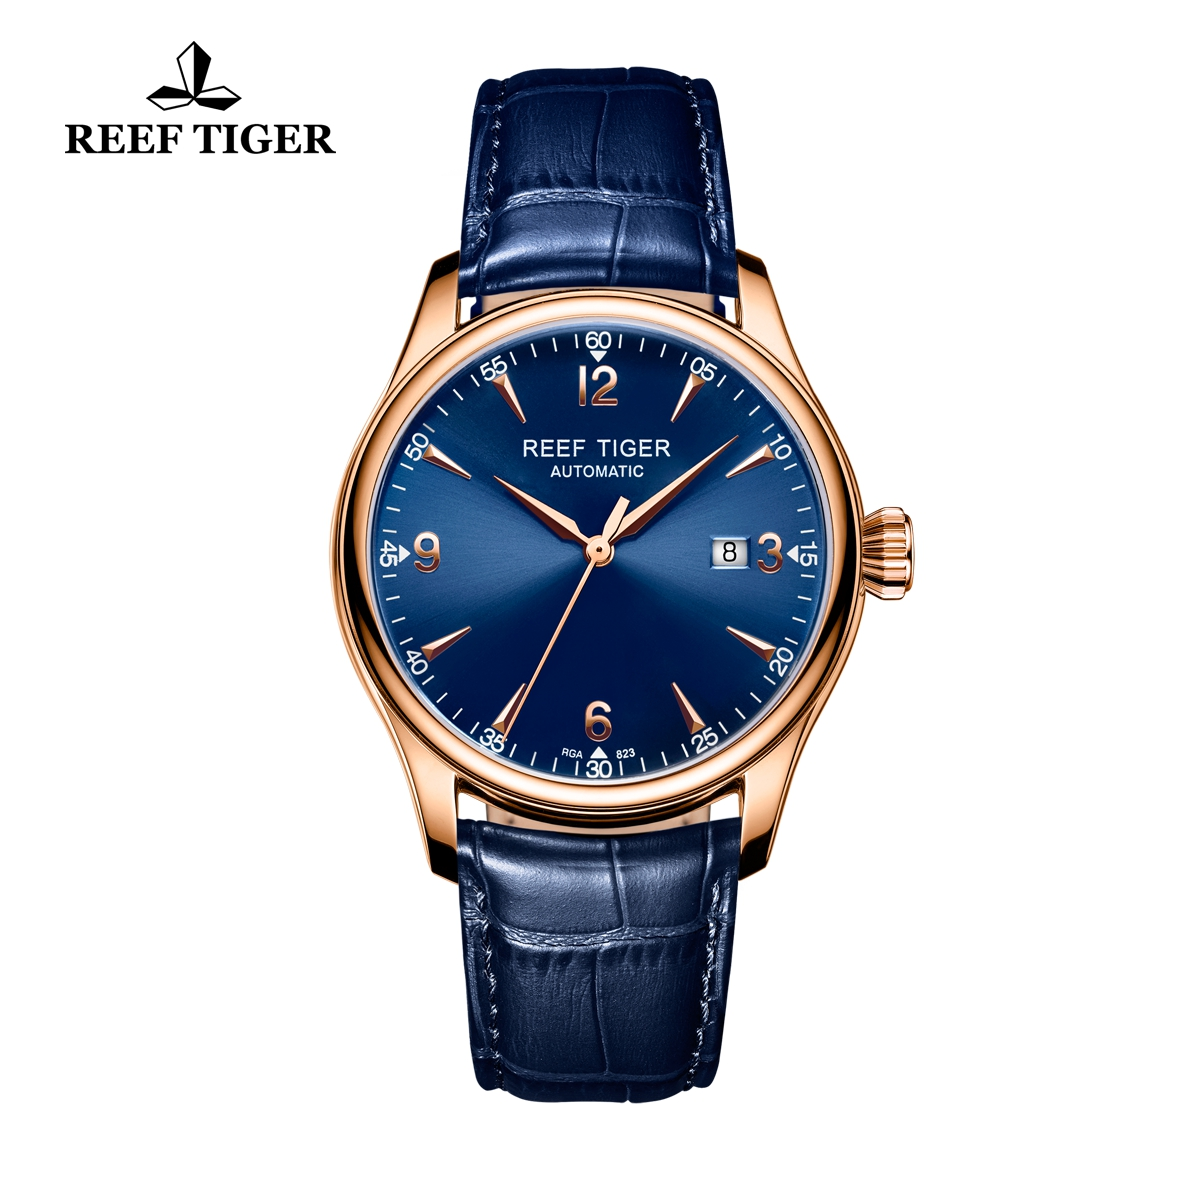 Reef Tiger Heritage Dress Automatic Watch Blue Dial Calfskin Leather Strap RGA823G-PLL